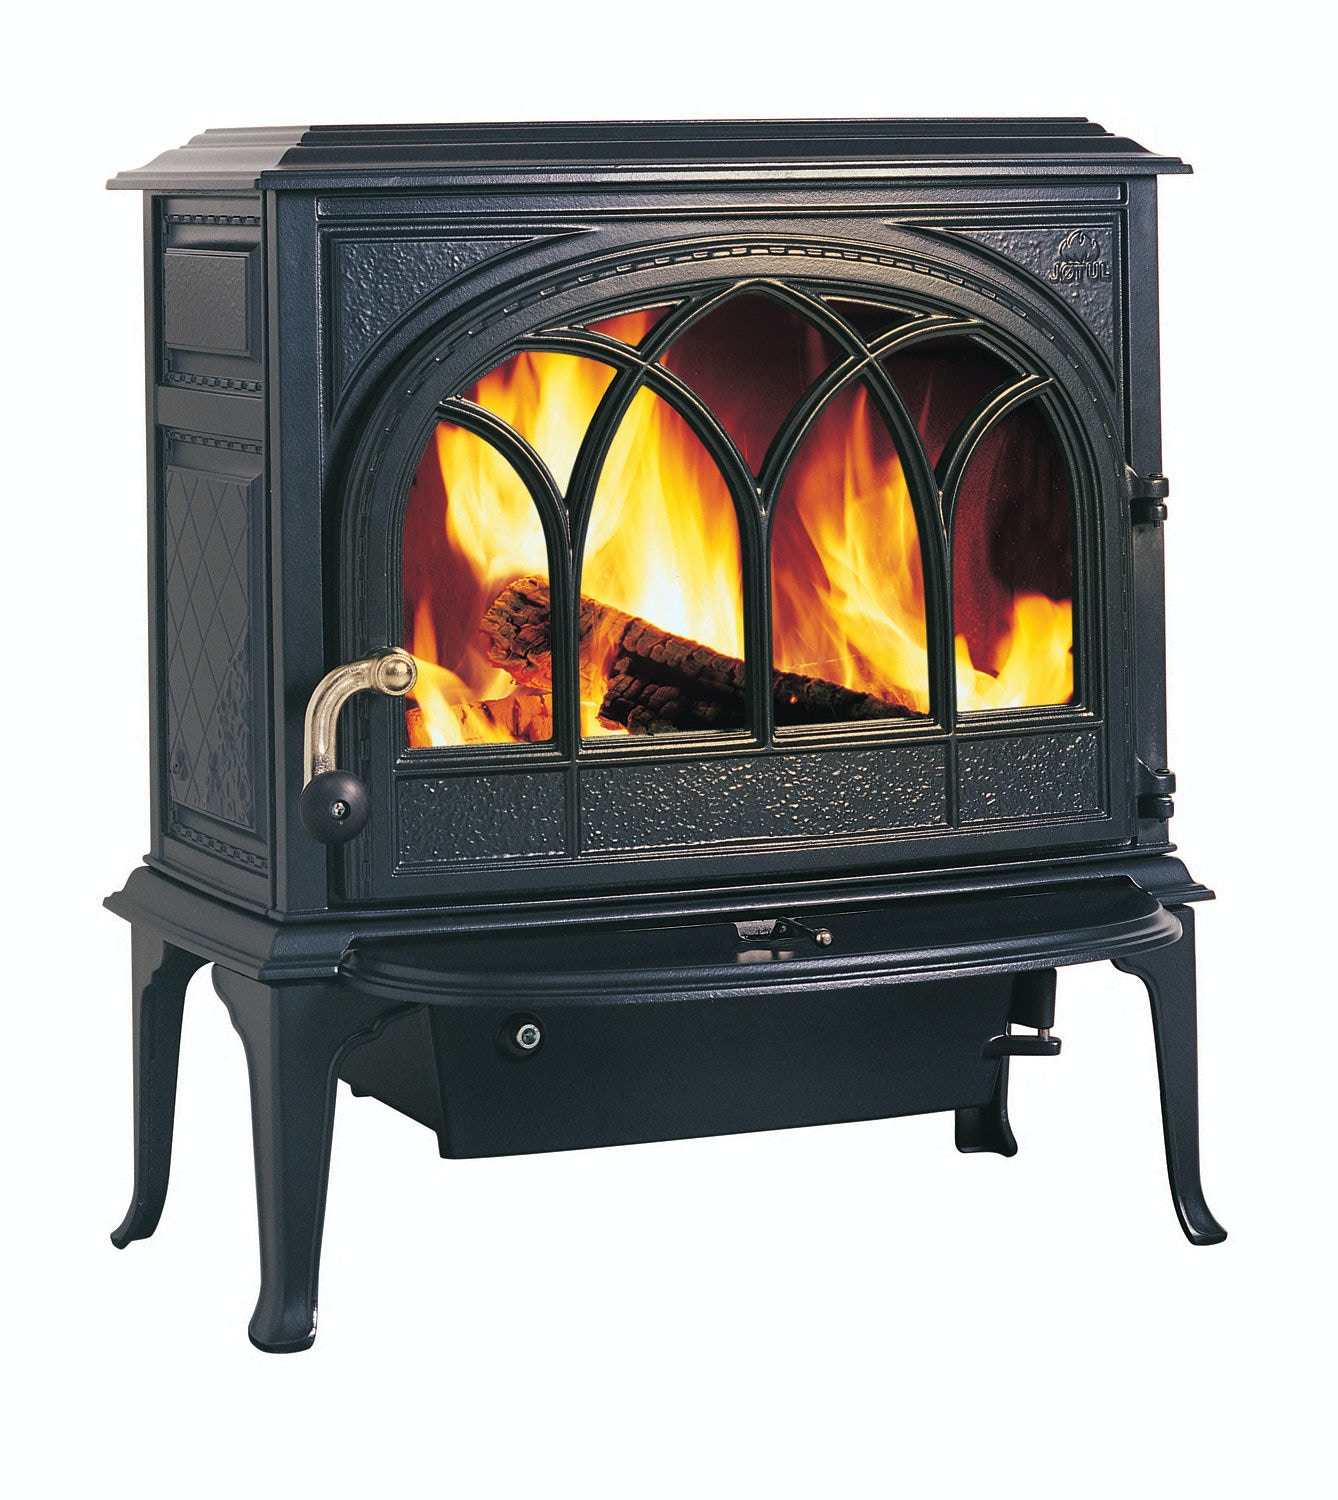 The Fire House Casual Outdoor/Patio Wood Burning Stove Is Available In  Charlotte, NC   Raleigh, NC   Greenville, SC From The Fire House Casual  Living Store.